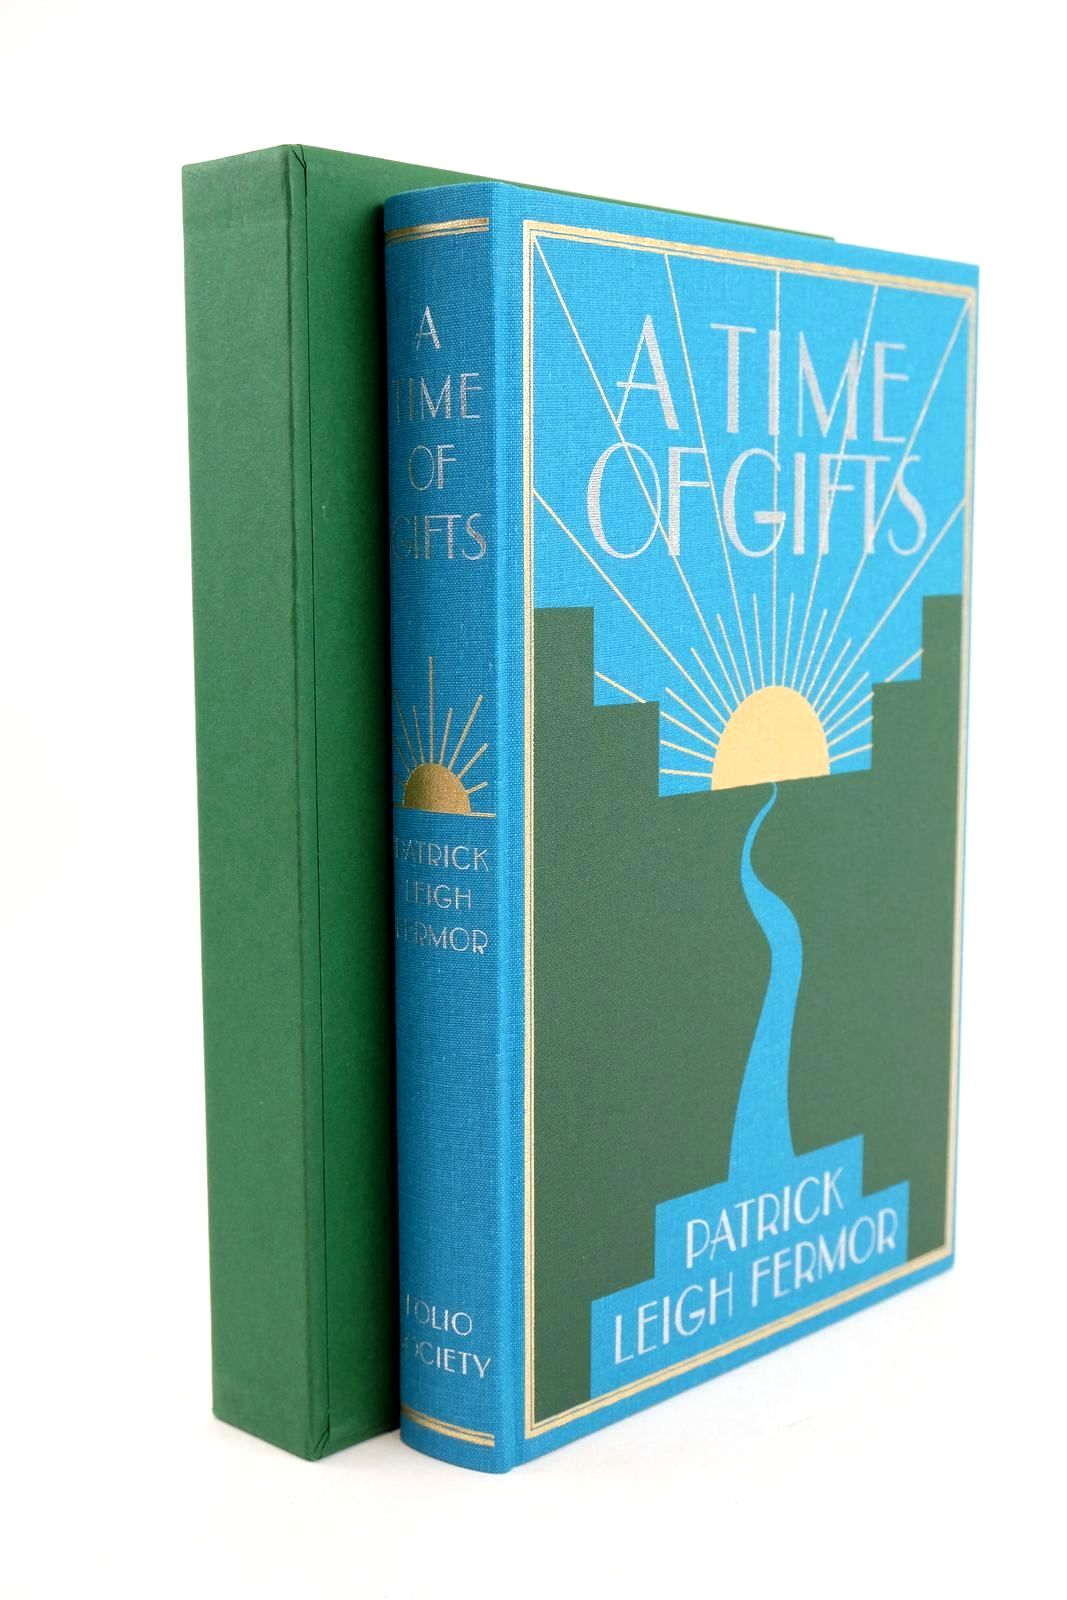 Photo of A TIME OF GIFTS written by Fermor, Patrick Leigh illustrated by Whistler, Daniel published by Folio Society (STOCK CODE: 1318923)  for sale by Stella & Rose's Books